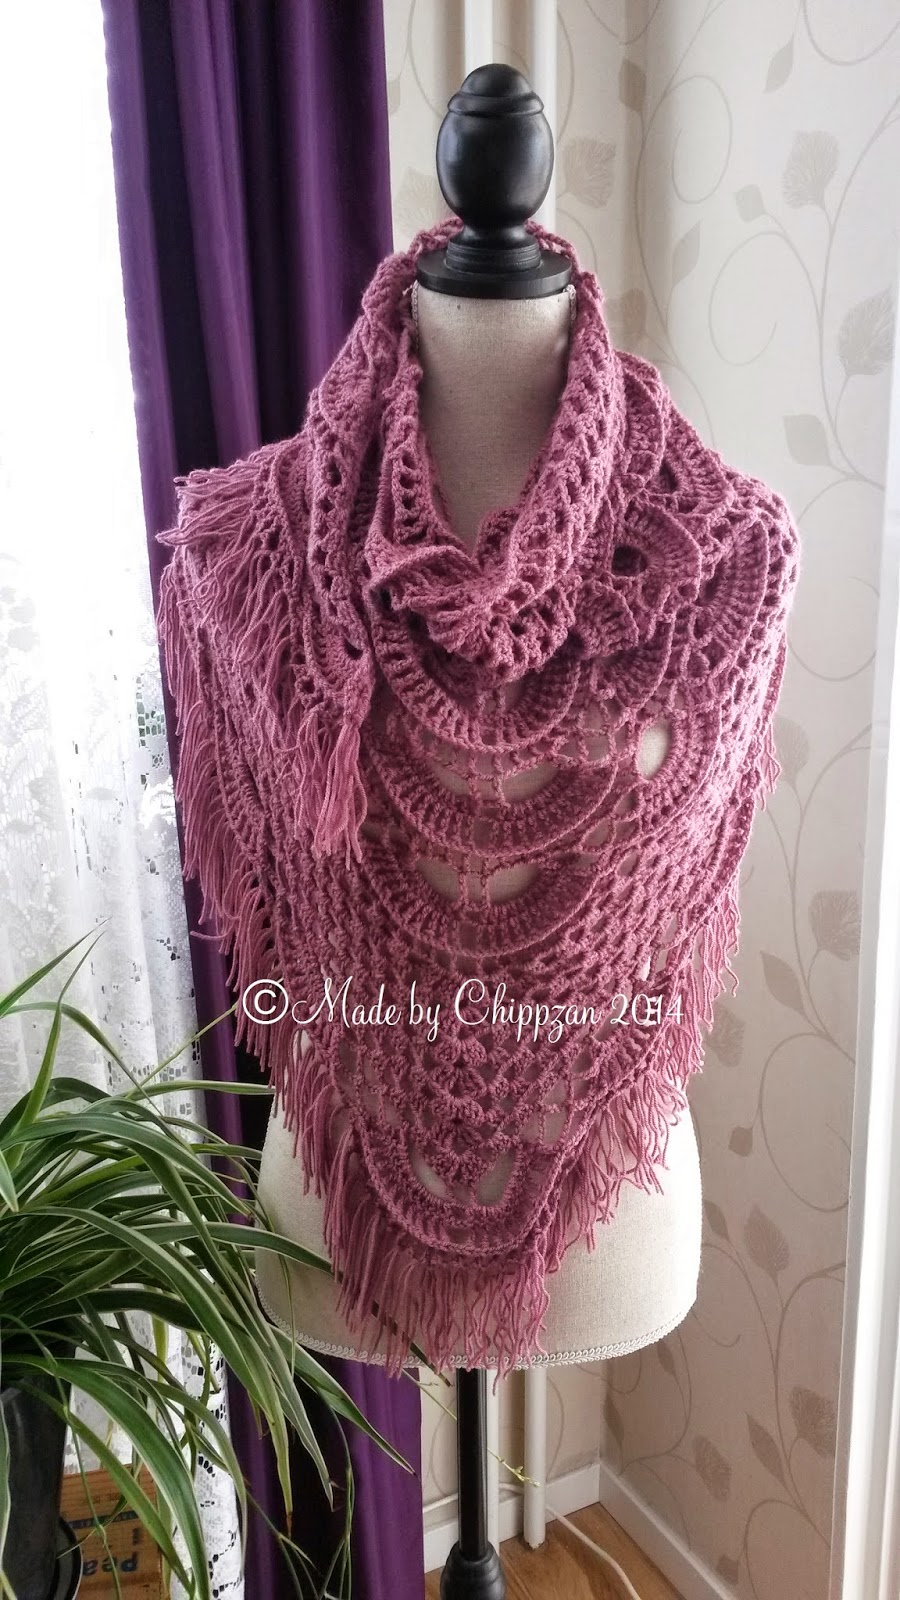 Free Crochet Shell Shawl Patterns : Made by Chippzan: Shawl - with shells and clusters of ...